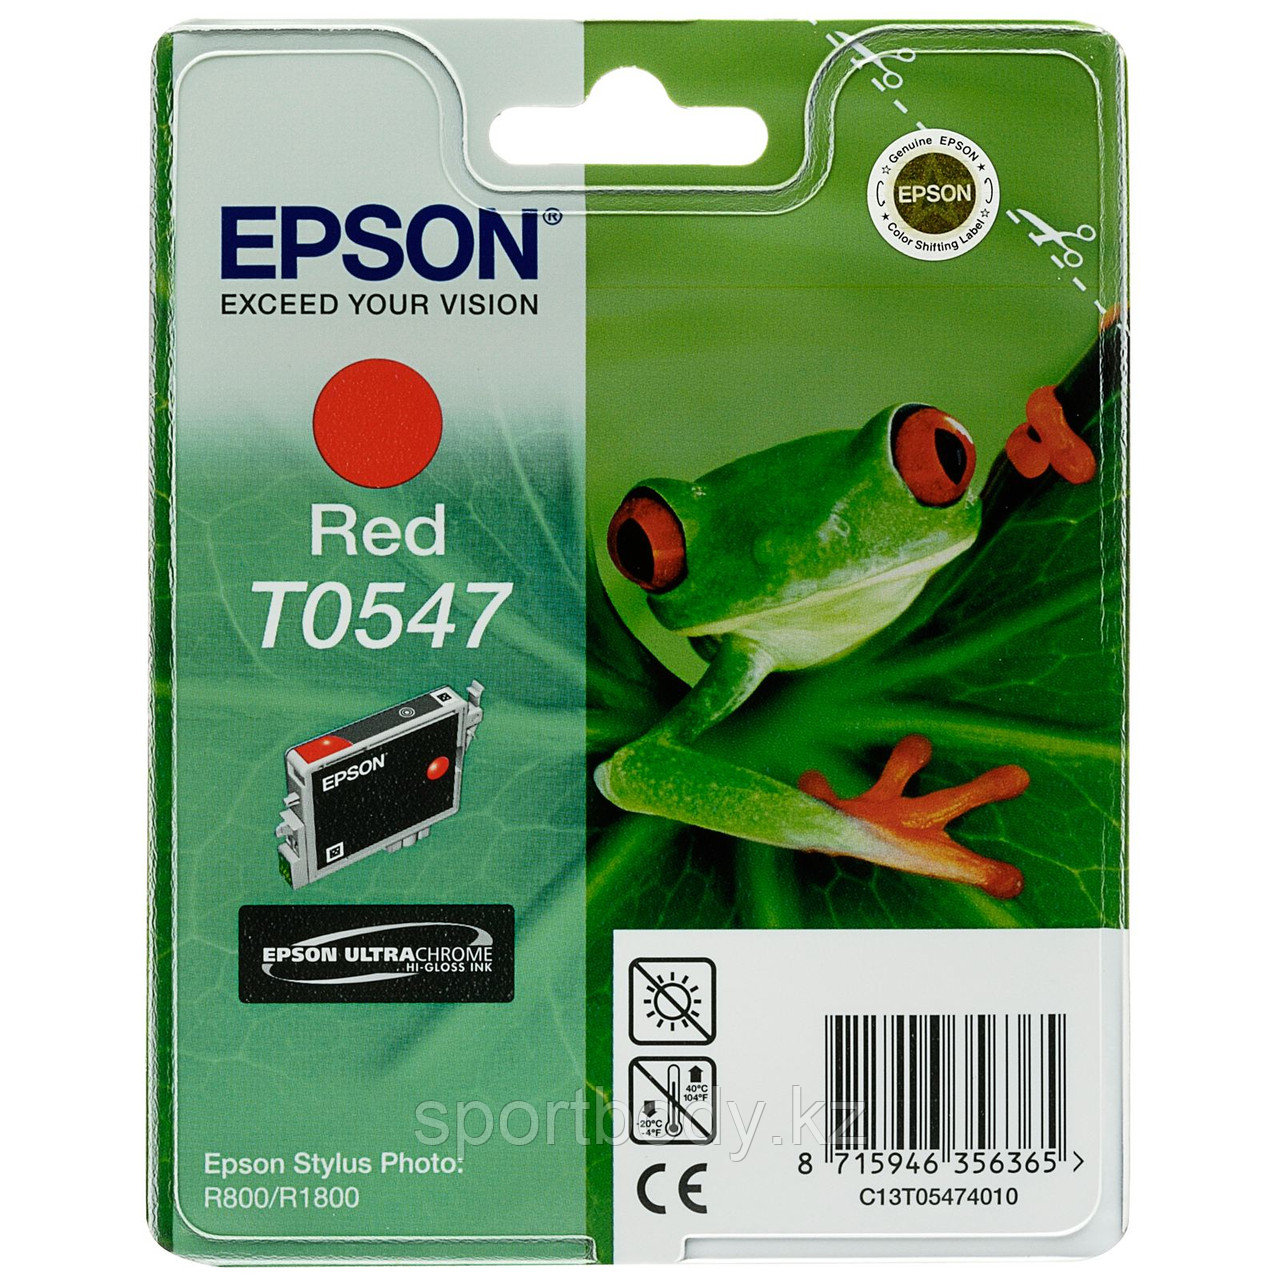 Картридж Epson C13T05474010 for Stylus Photo R800 / R1800 Red Ink Cartridge new для: Epson Stylus Photo R800, Epson Stylus Photo R1800 - Market Place в Алматы